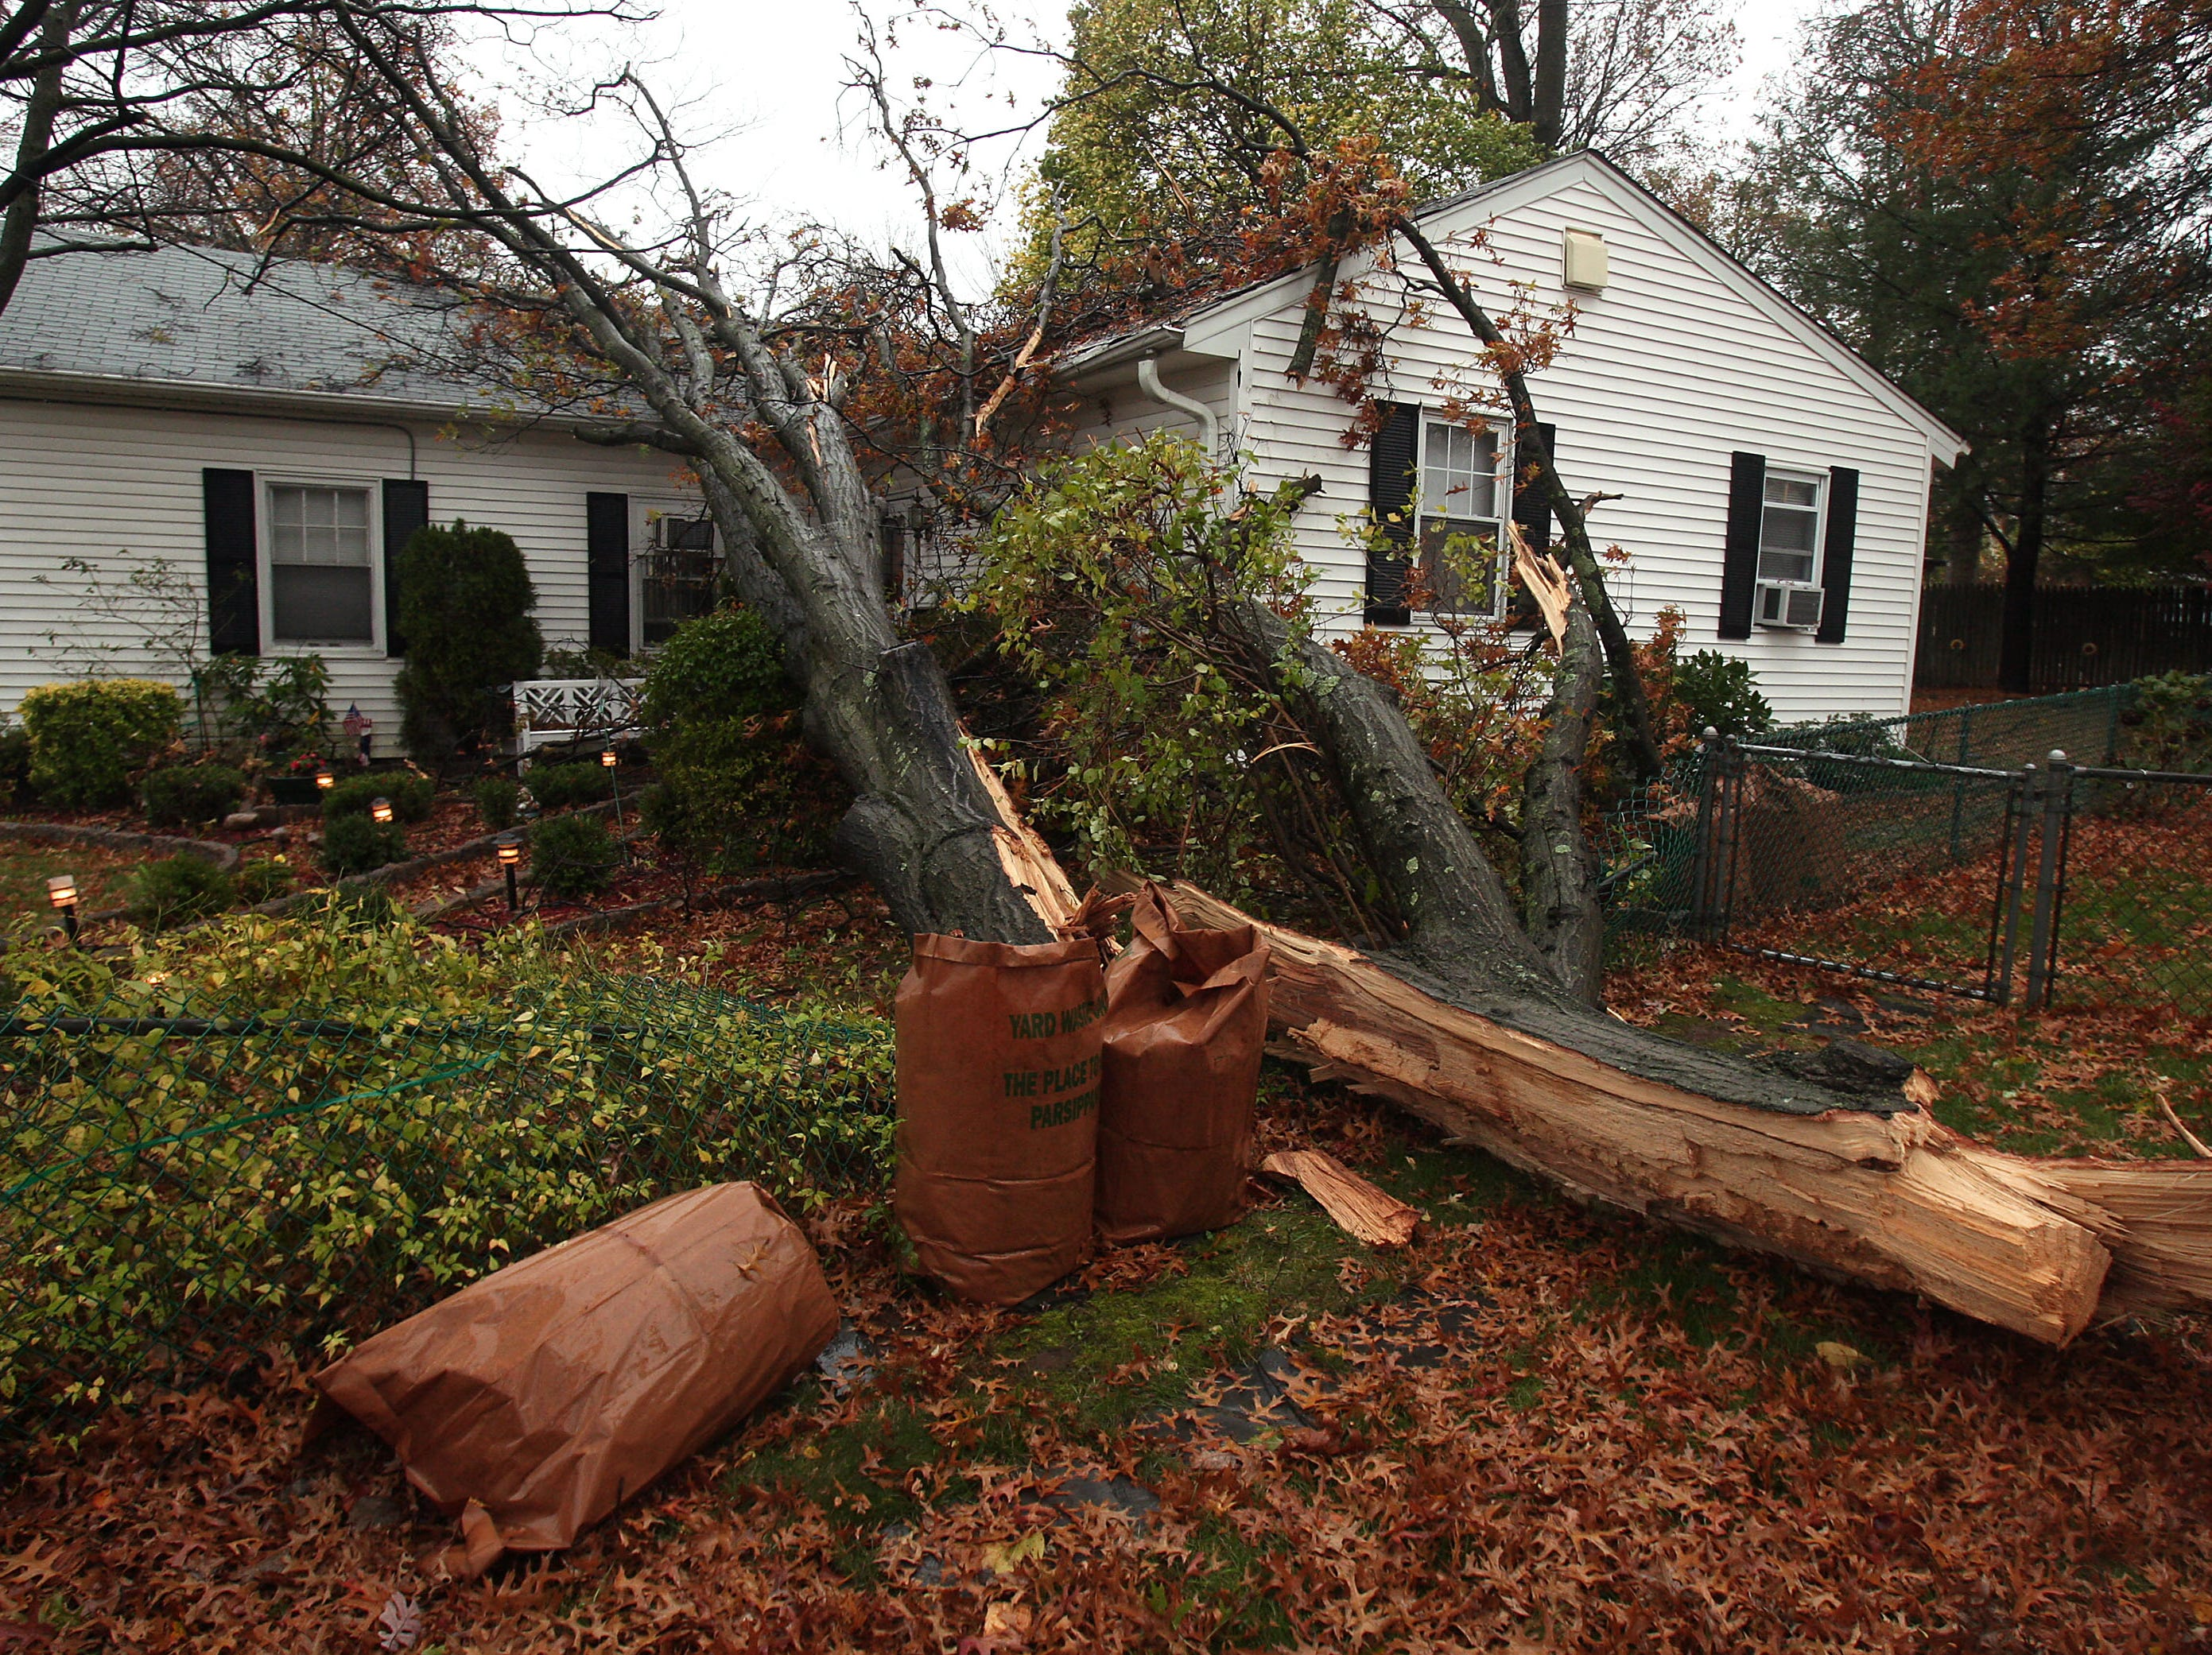 Parsippany, NJ-- October 29, 2012--A large tree fell due to high winds from Hurricane Sandy, crashing into a Flemington Drive home. Bob Karp/Staff Photographer/DAILY RECORD